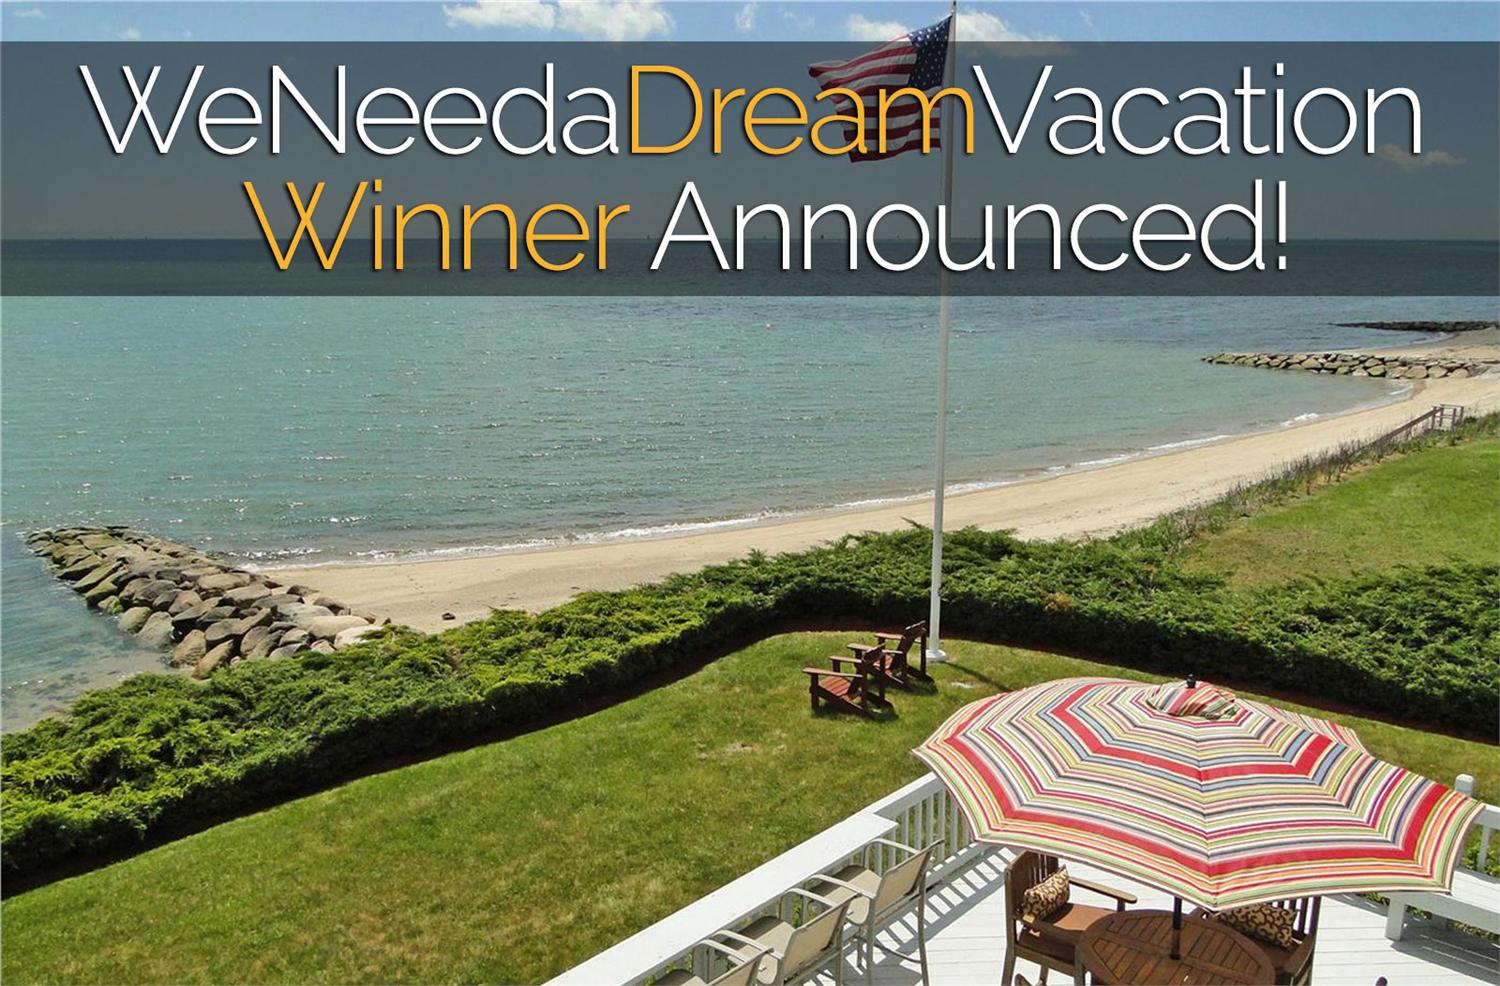 We finally crowned a winner for the WeNeedaDreamVacation Giveaway. Find out who won and the odds they beat to win.